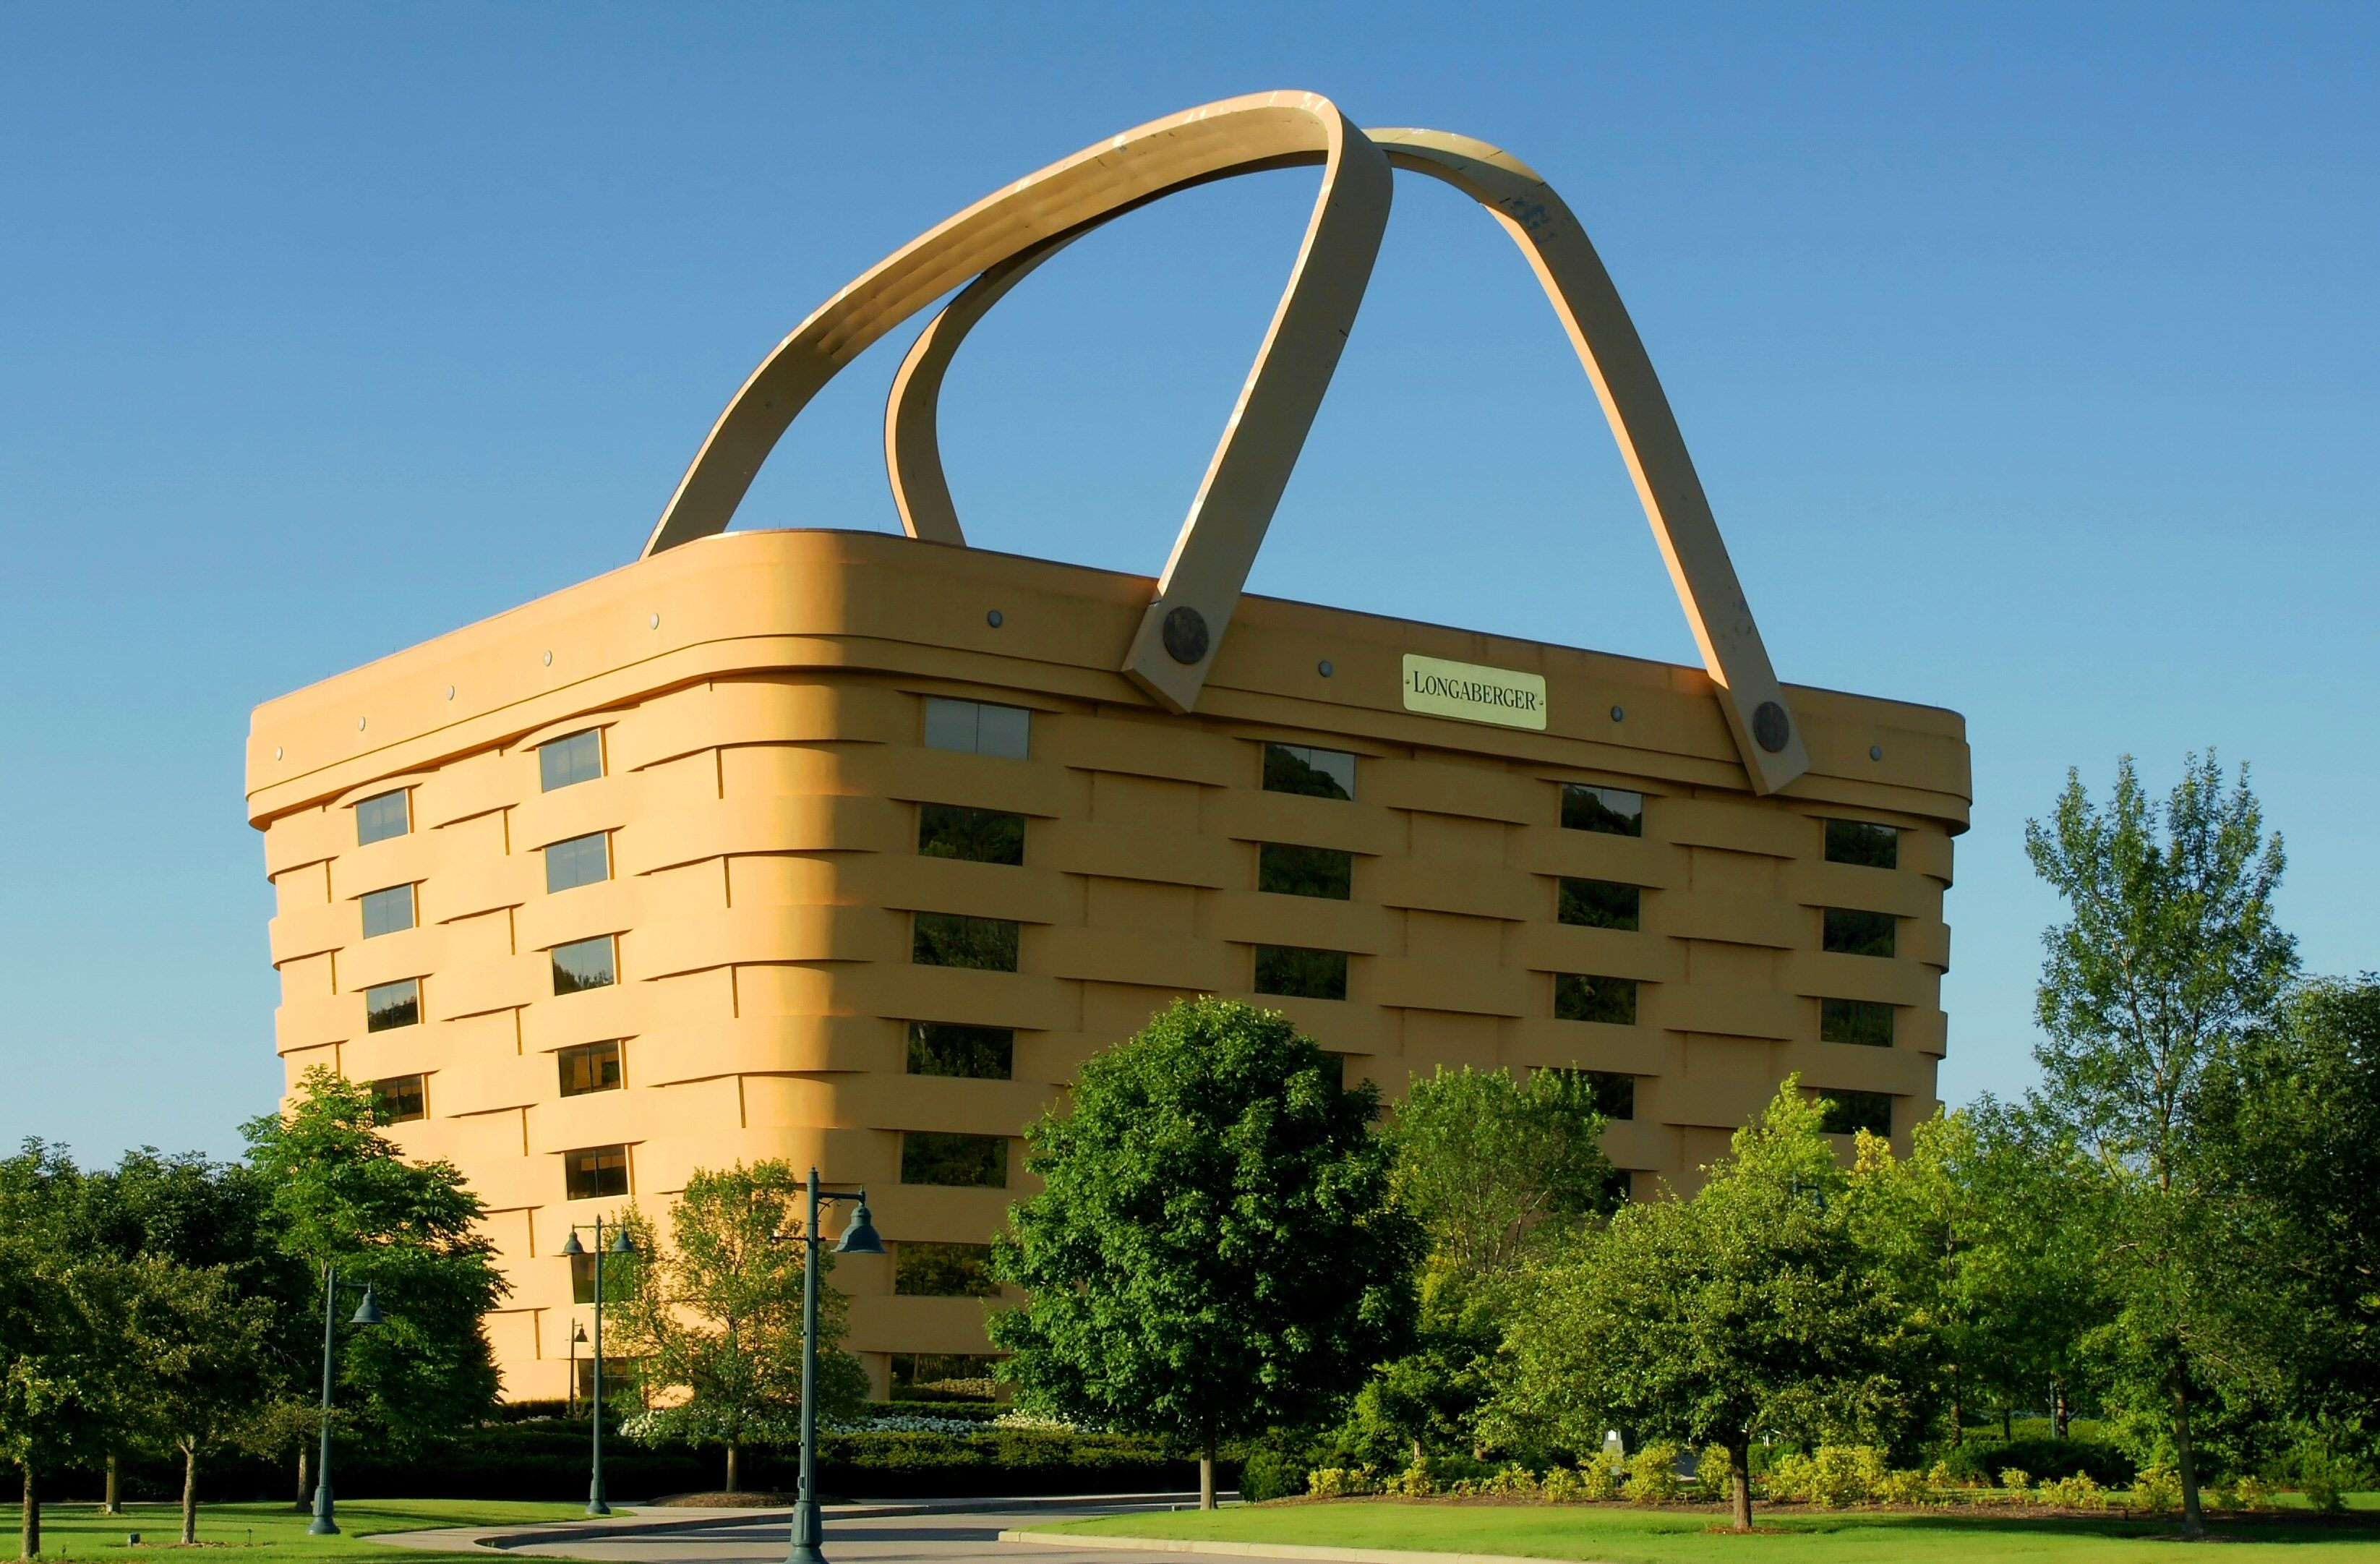 Office building for Longaberger Company, shaped like a wooden basket